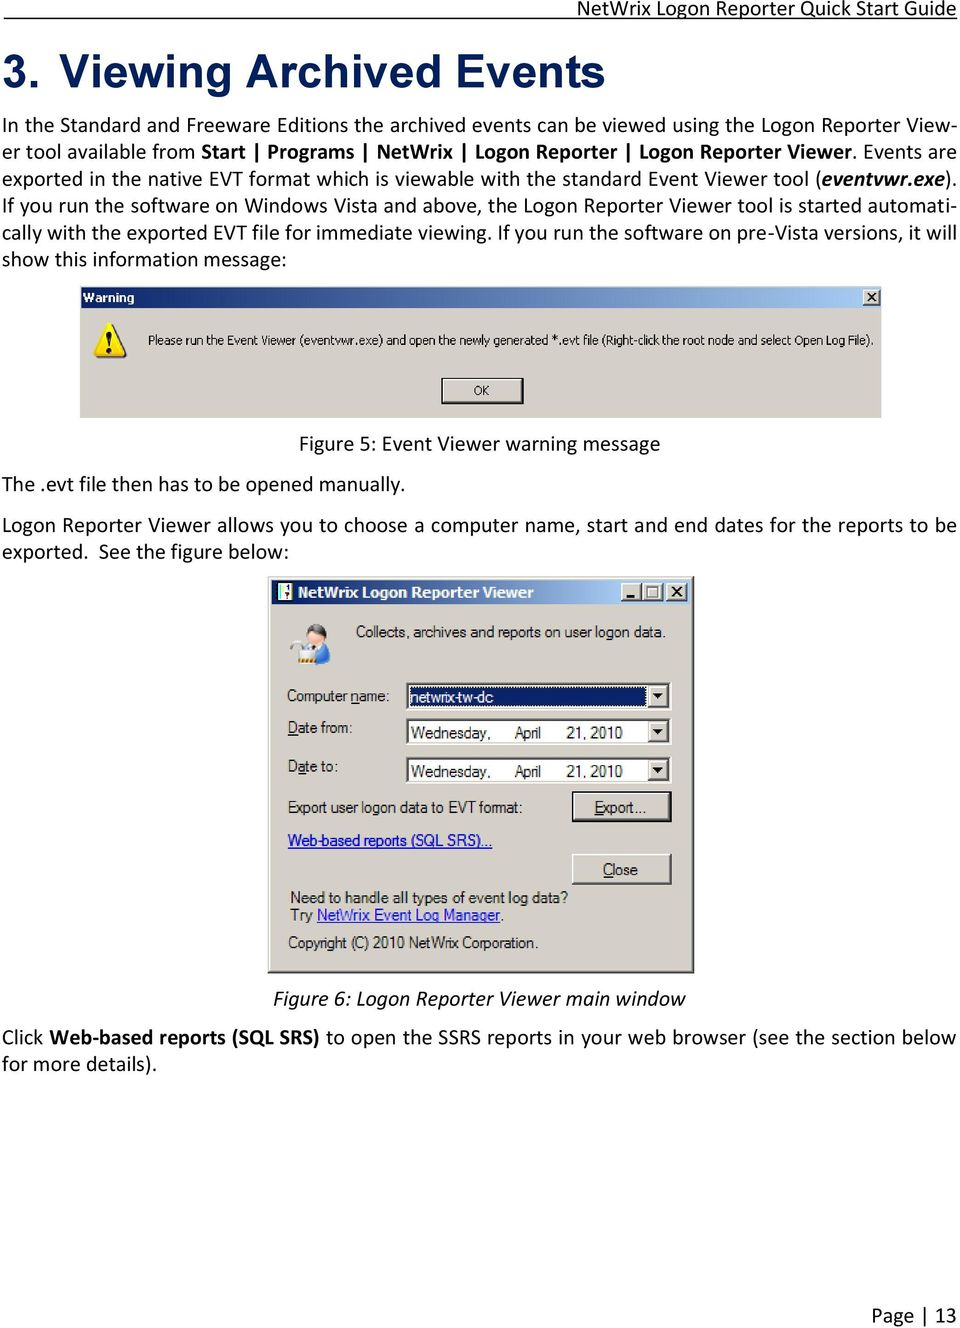 If you run the software on Windows Vista and above, the Logon Reporter Viewer tool is started automatically with the exported EVT file for immediate viewing.